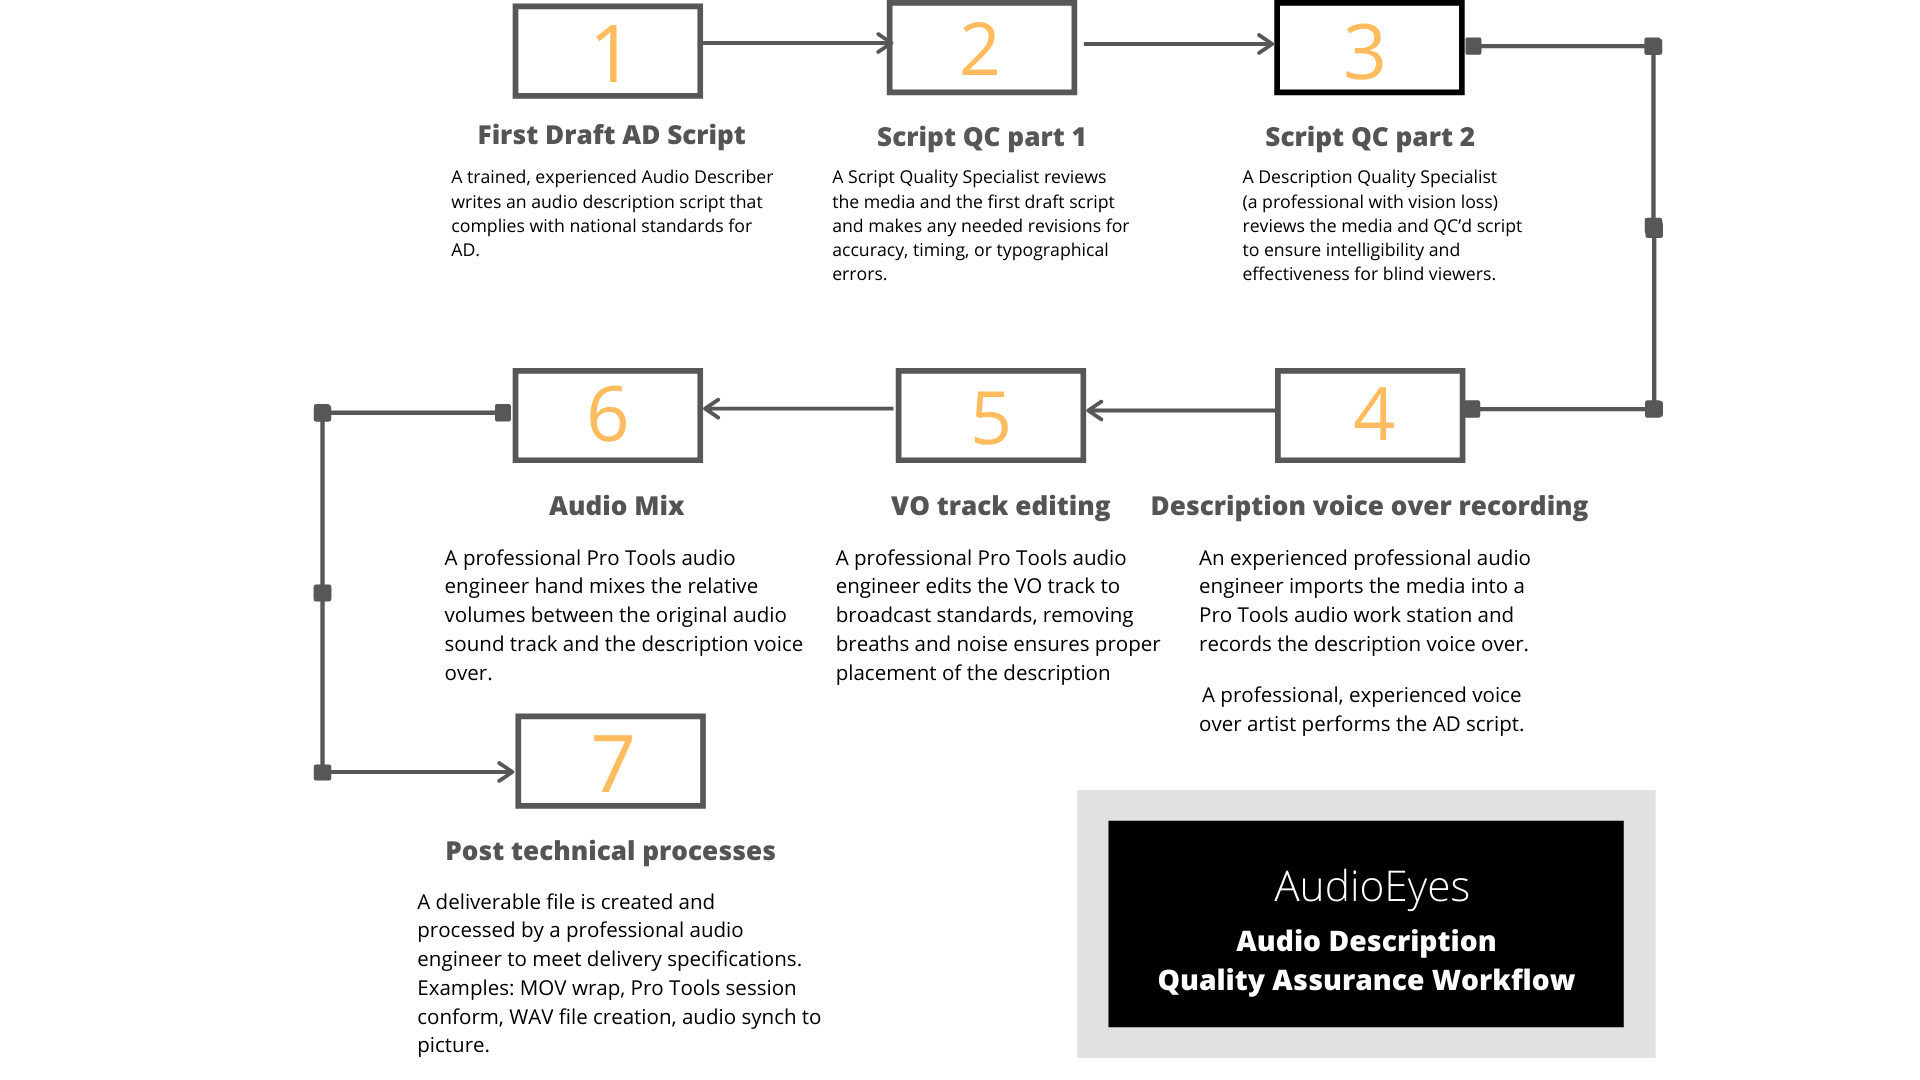 The Audio Eyes Quality Assurance Workflow